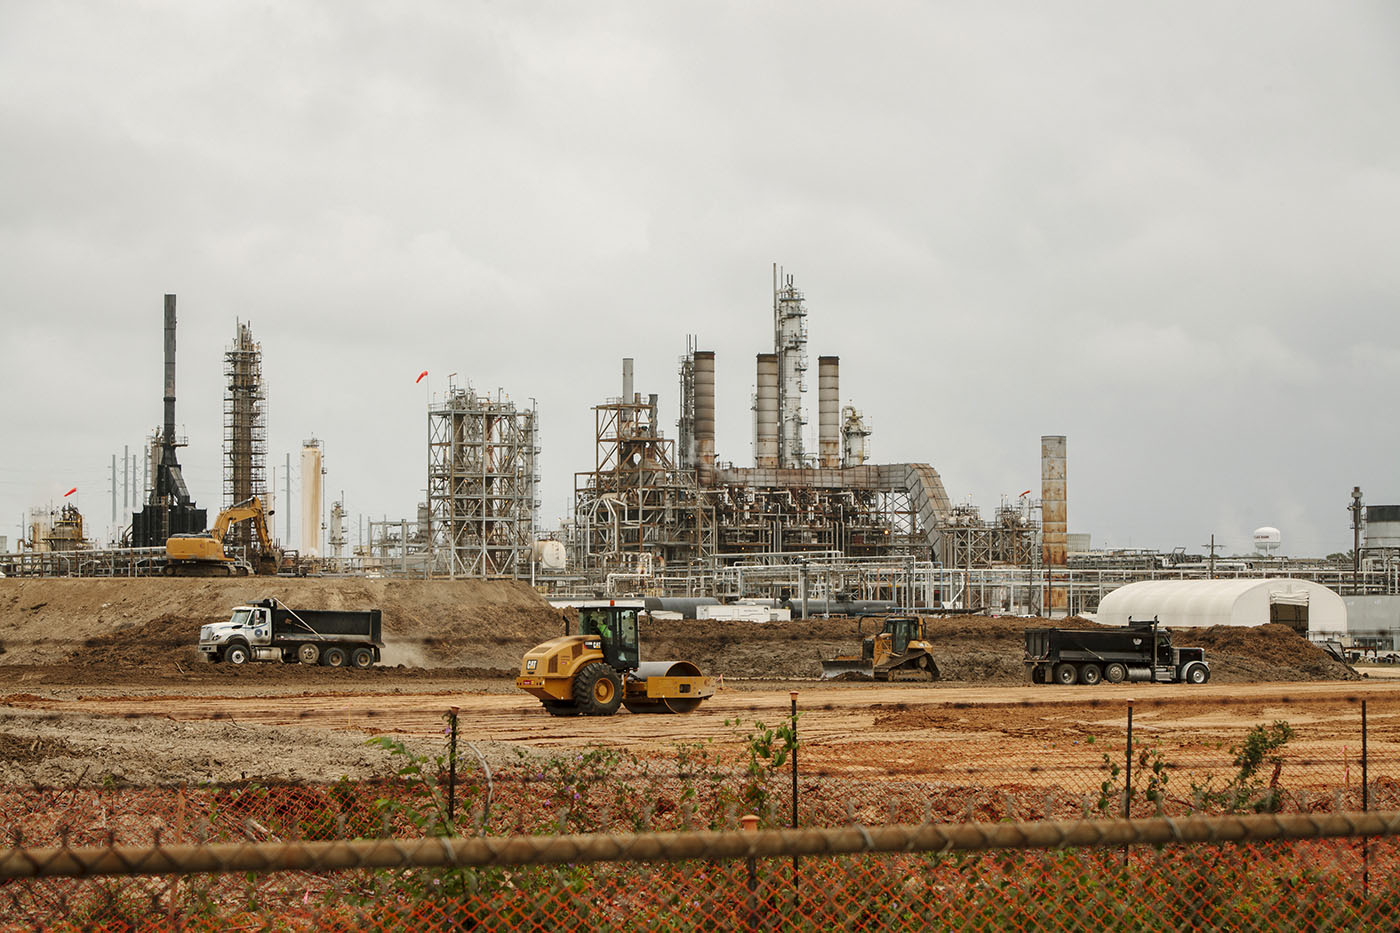 The Sasol plant is rapidly expanding across acres of land that were once part of the tiny towns of Westlake and Mossville, La., Oct. 23, 2015.